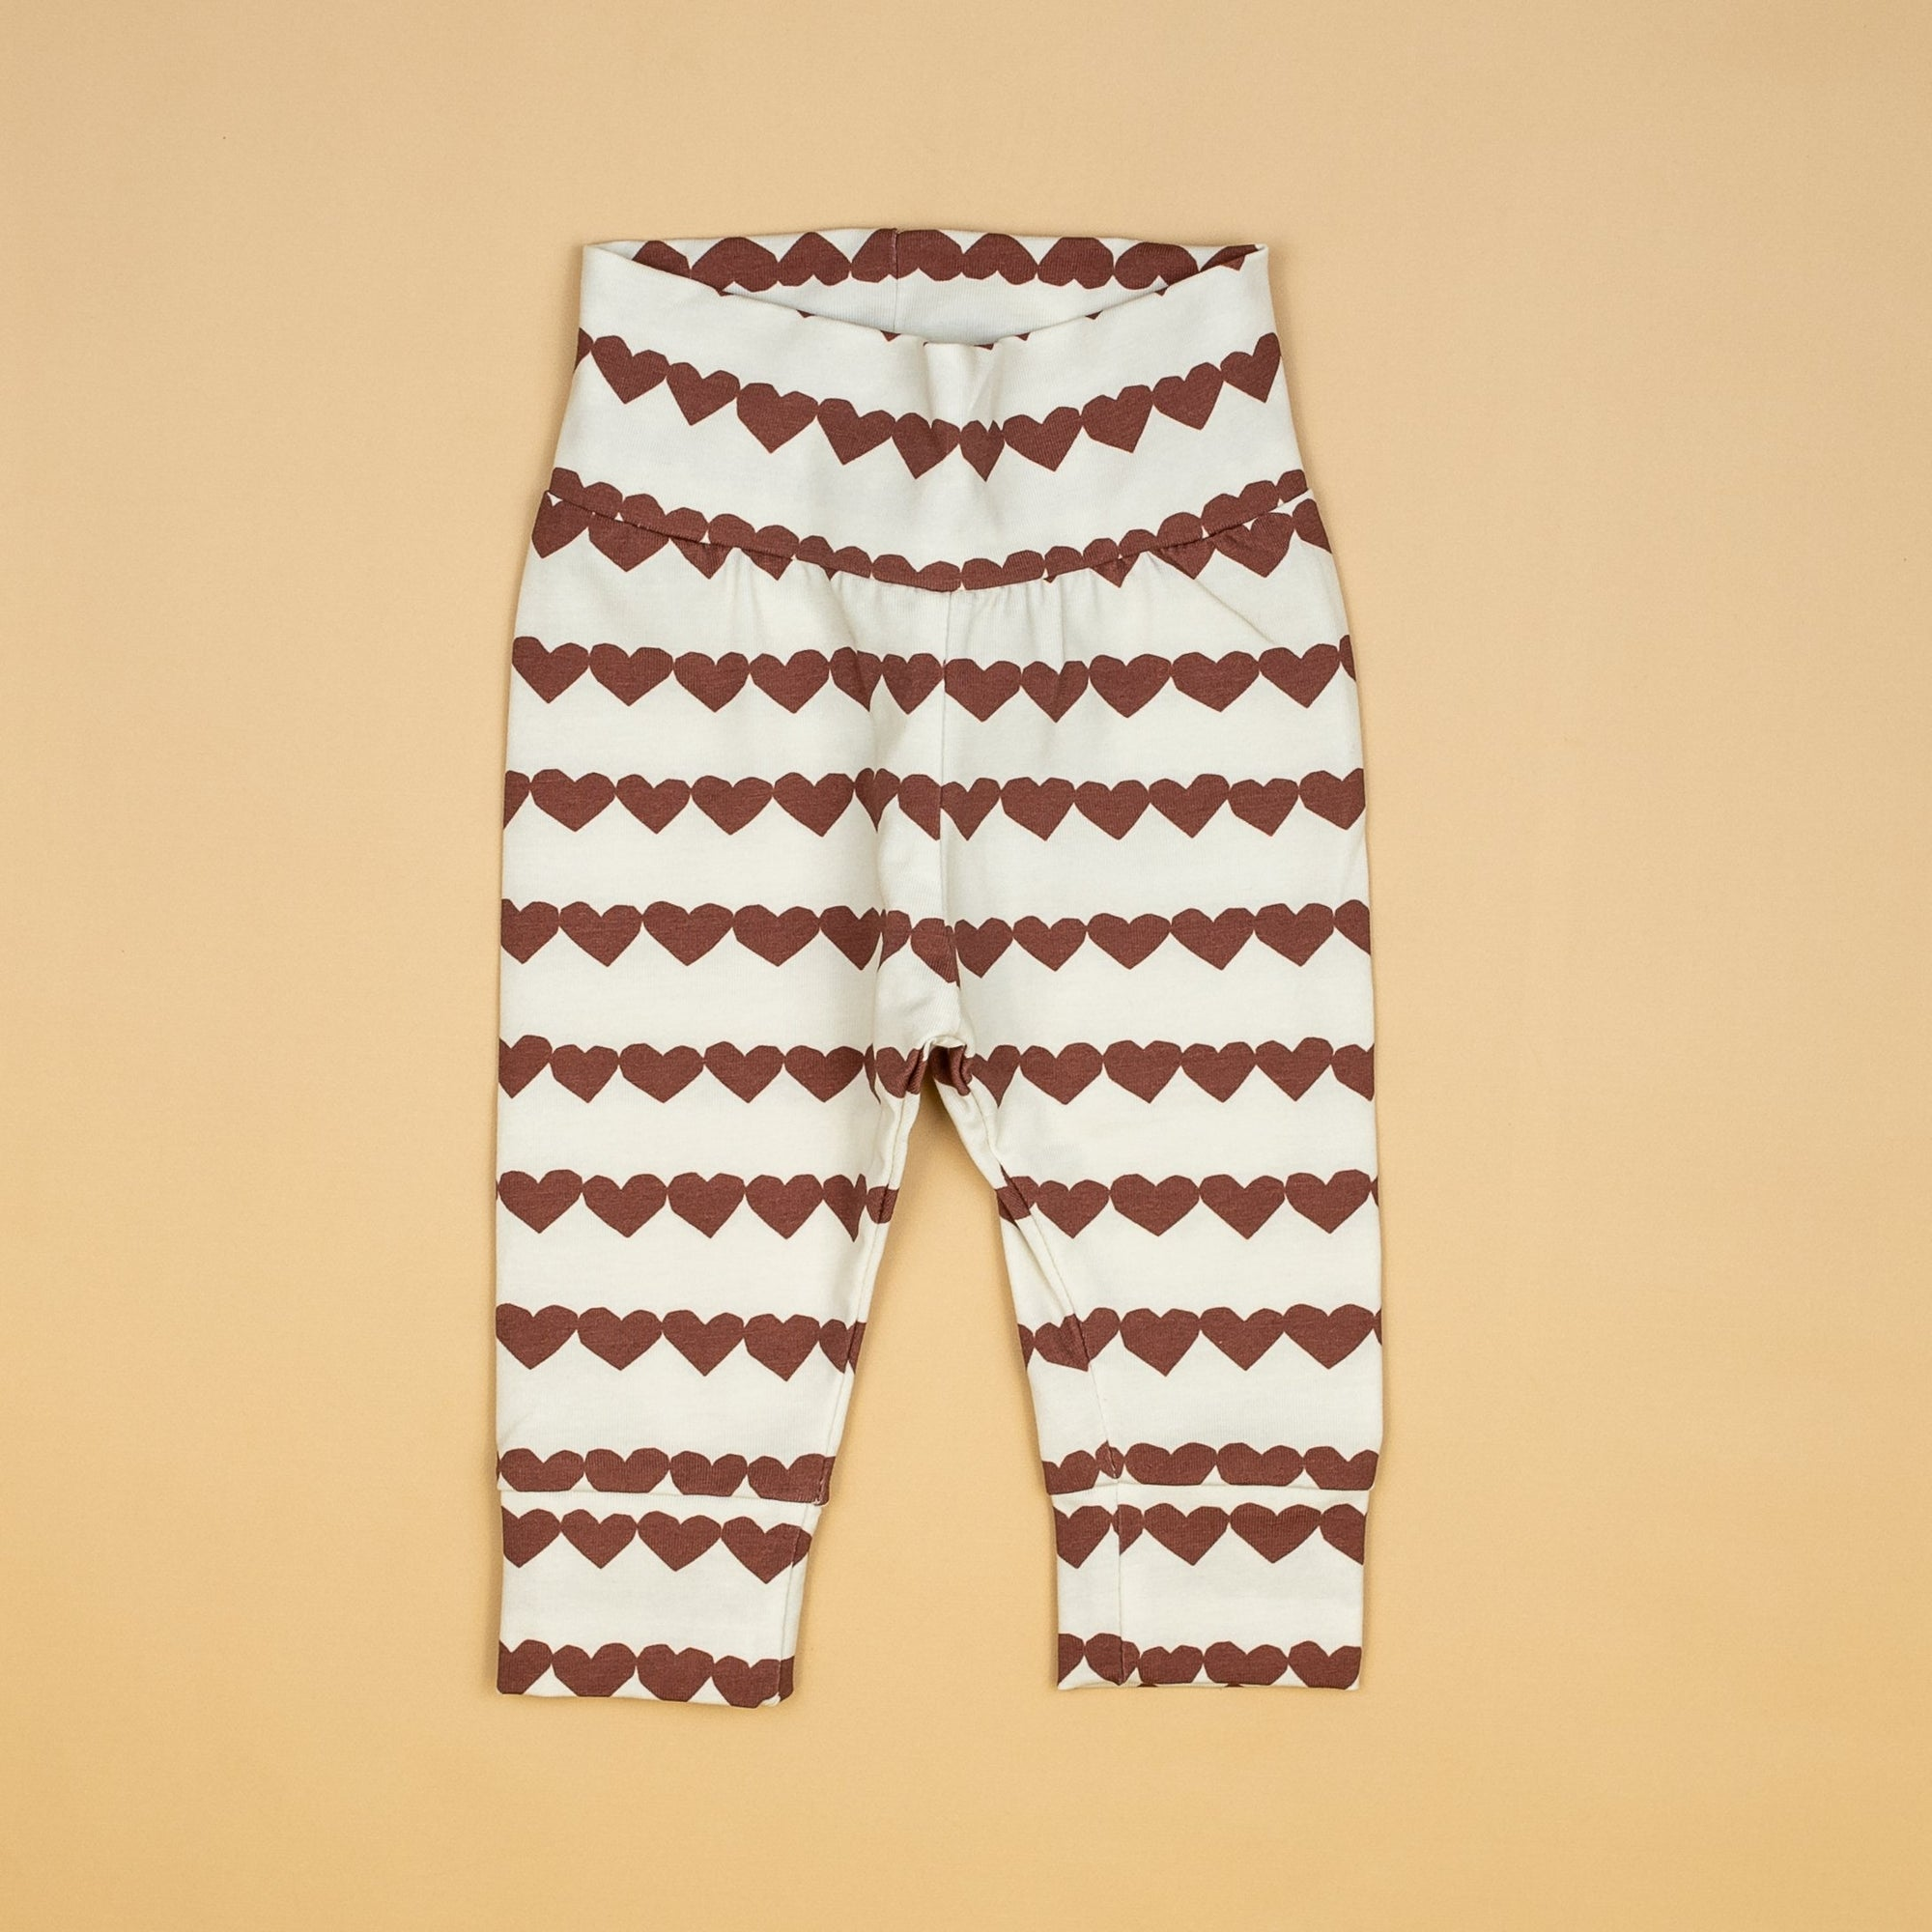 Cuddle Sleep Dream Heartstrings in Rust Leggings